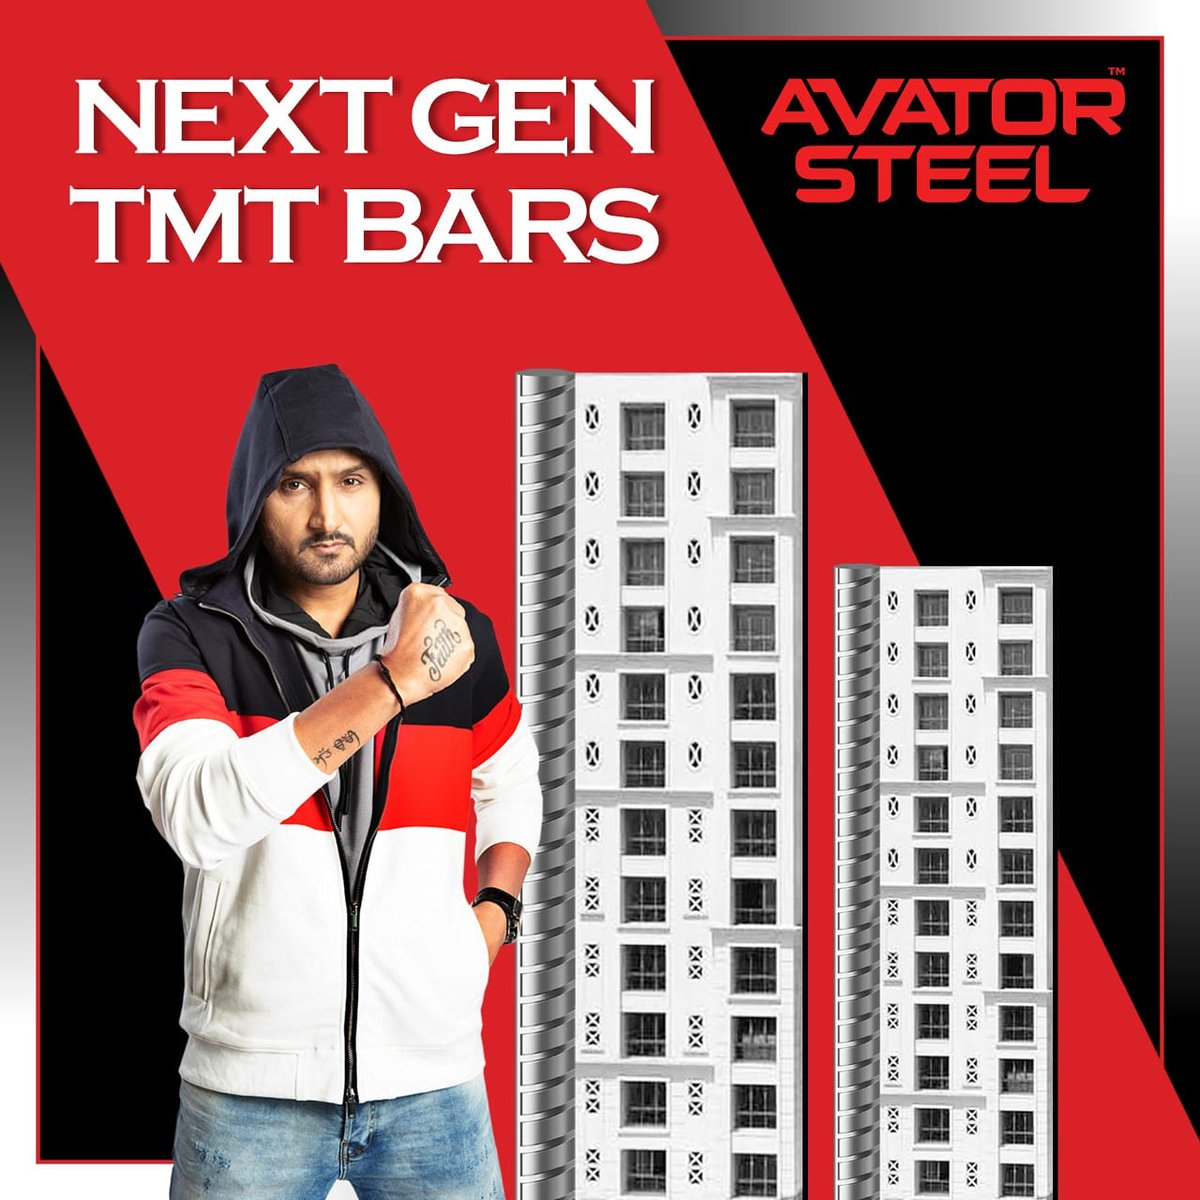 Earthquakes or corrosion doesn't stand a chance when you build your dream home with the next gen tmt bars, #AvatorSteel.   #HarbhajanSingh   @harbhajan_singh